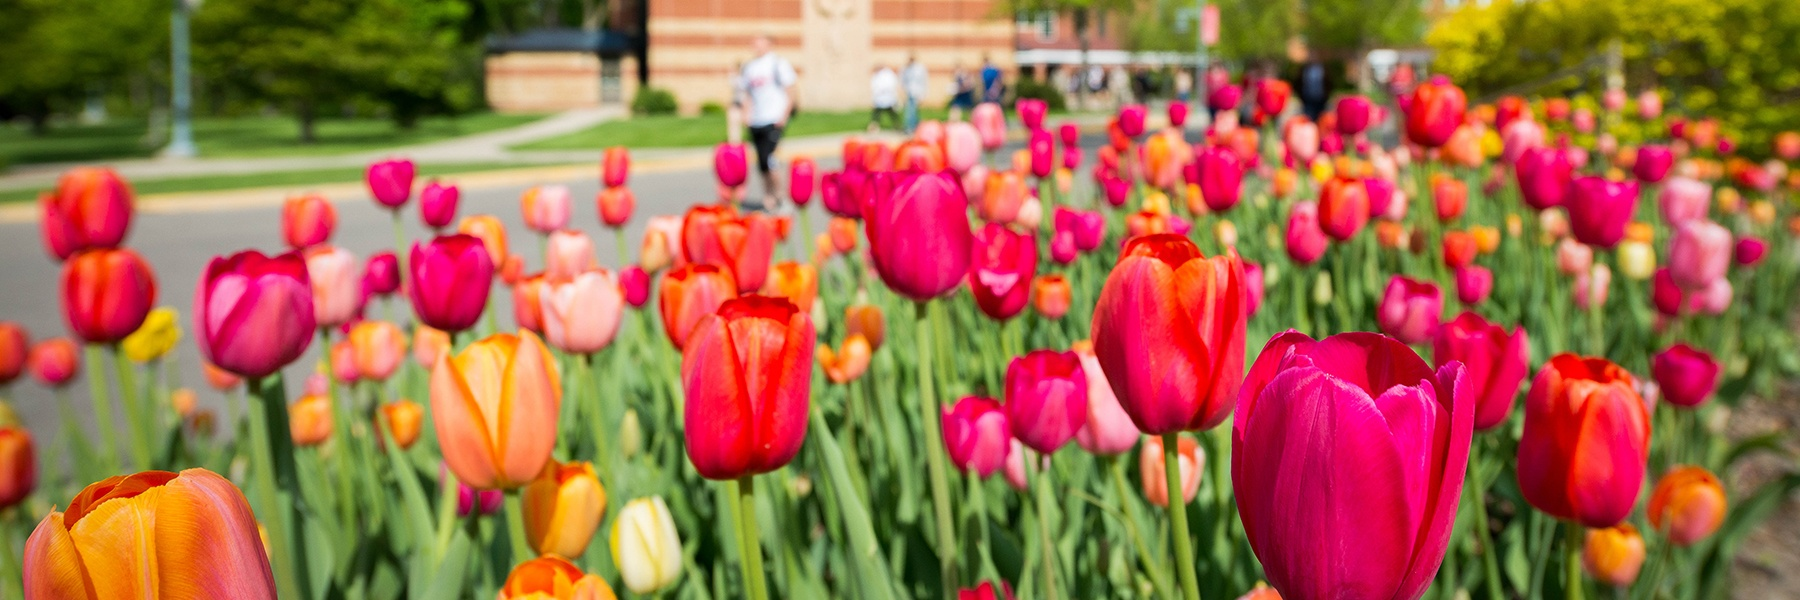 Tulips in a flower bed by Trinity Chapel